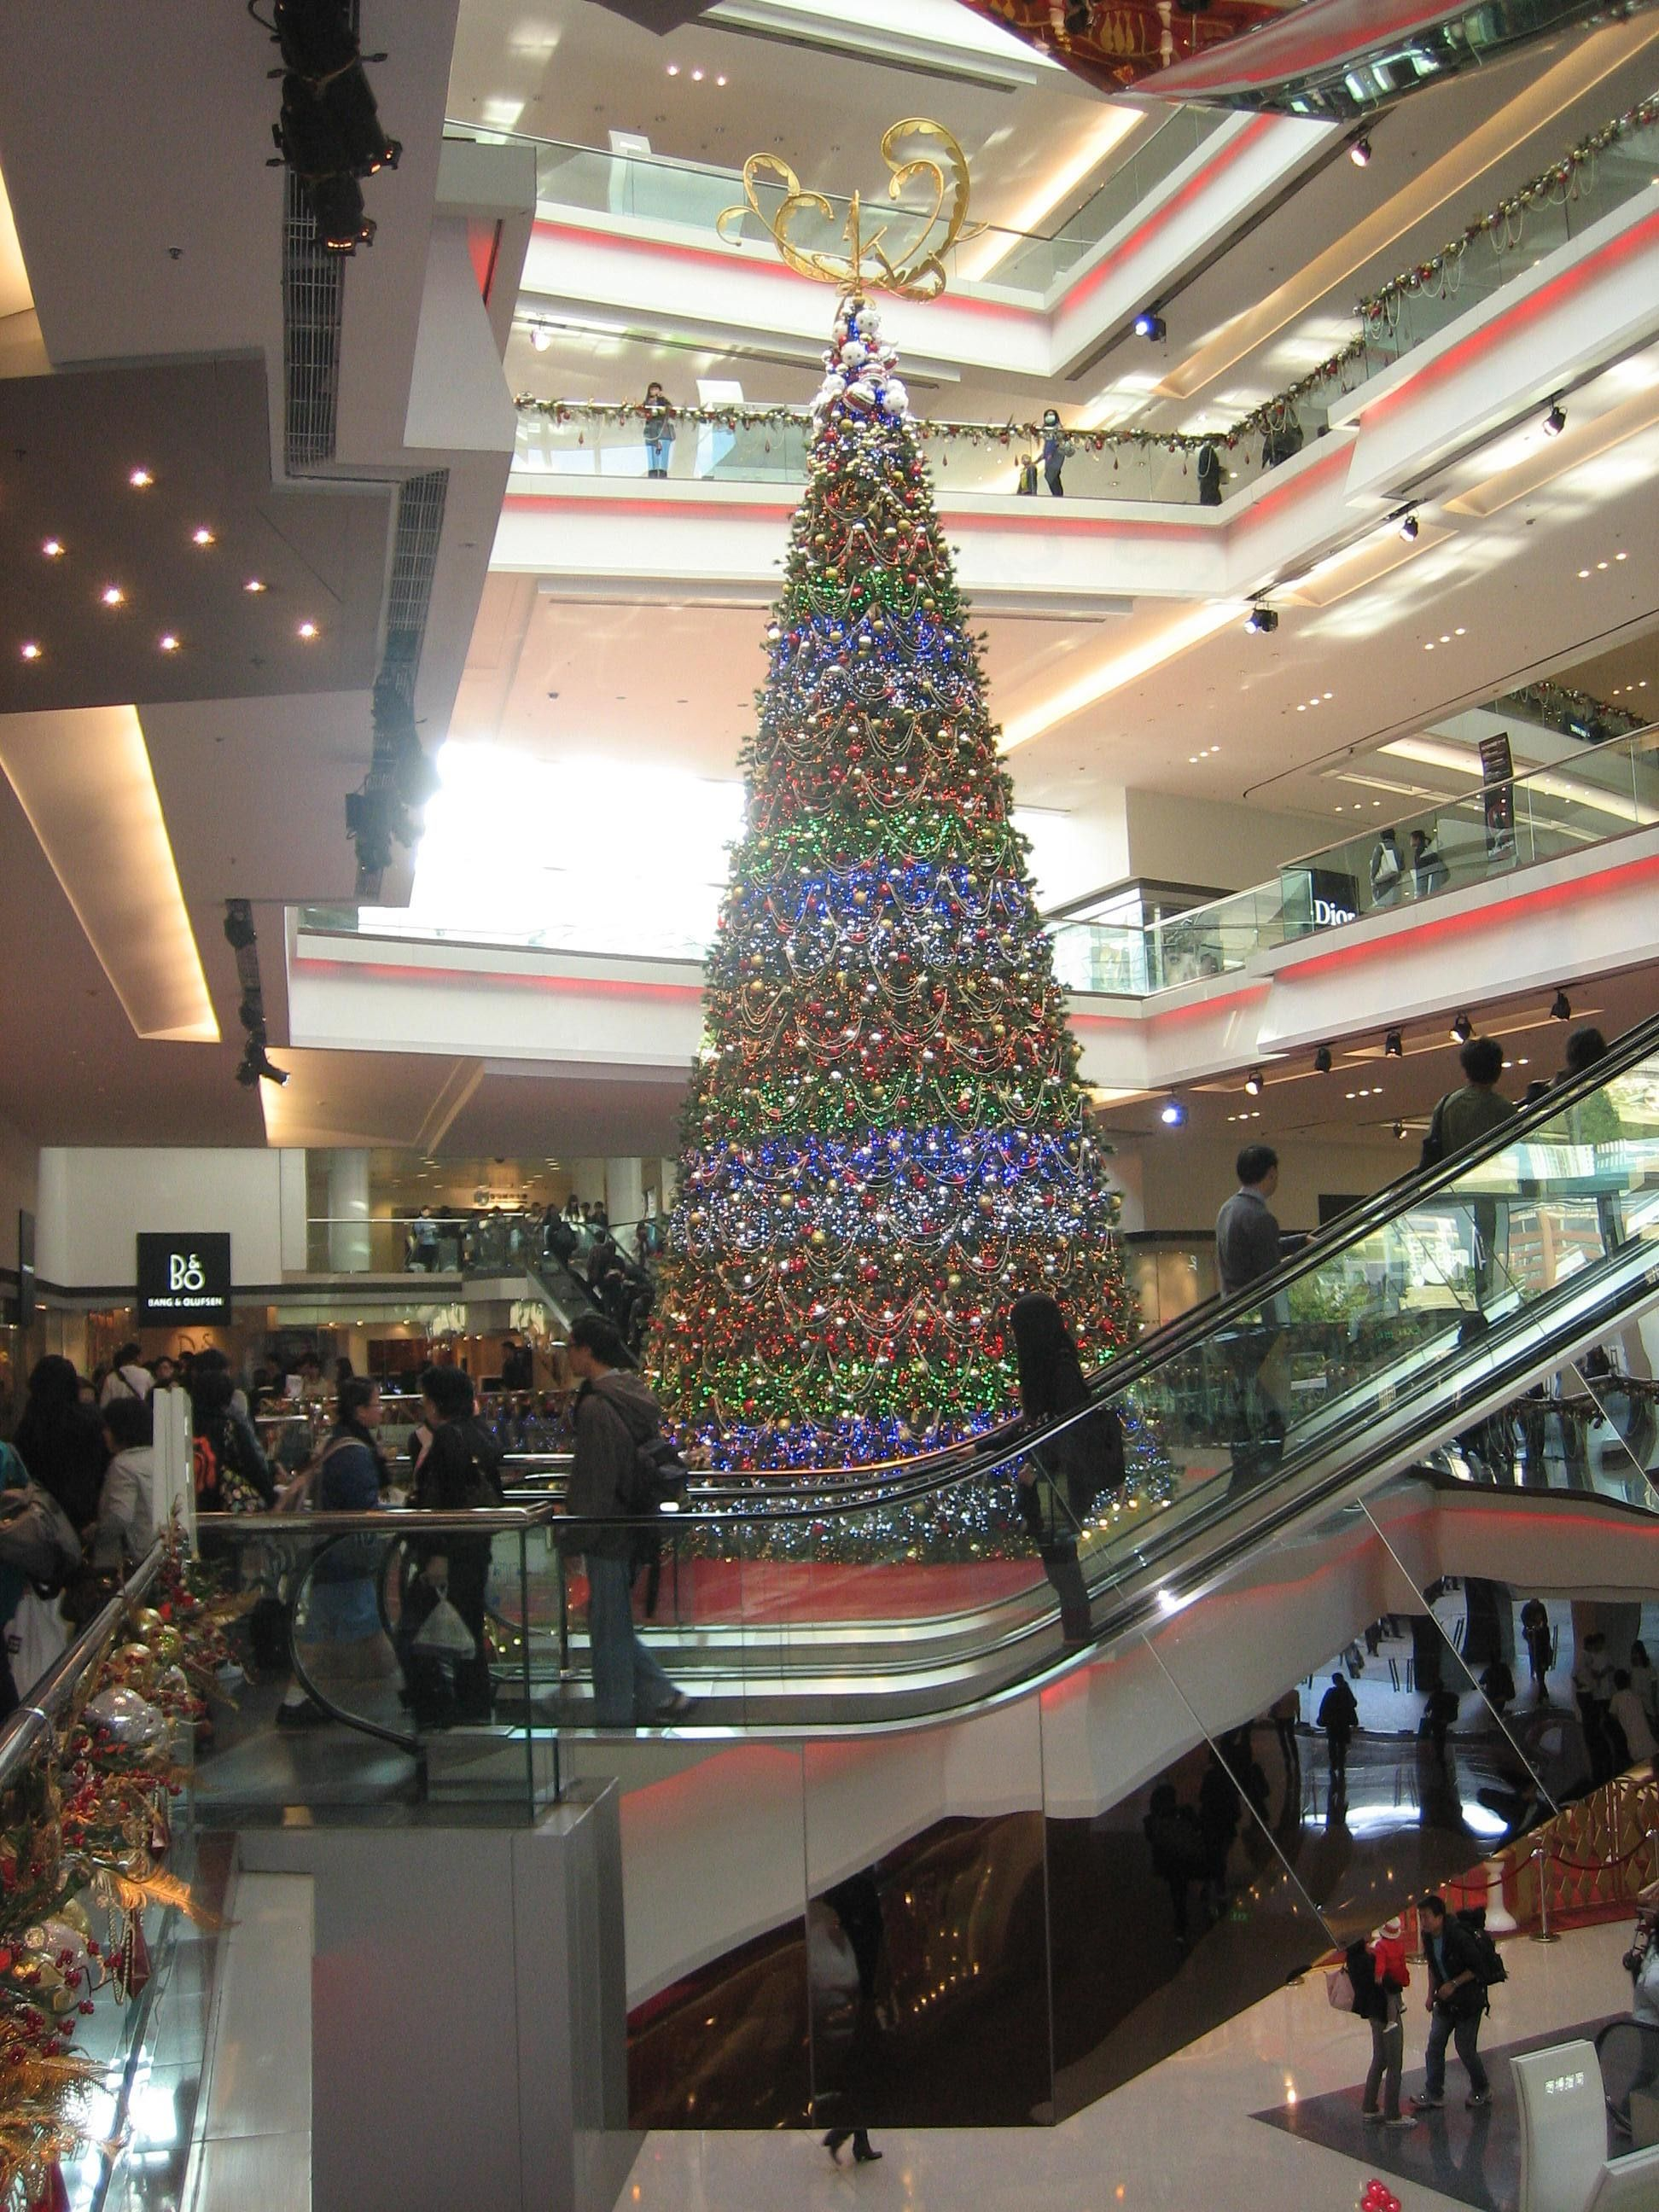 Christmas Tree In A Mall In Hong Kong Christmas Tree Christmas Tree Decorations Tree Decorations